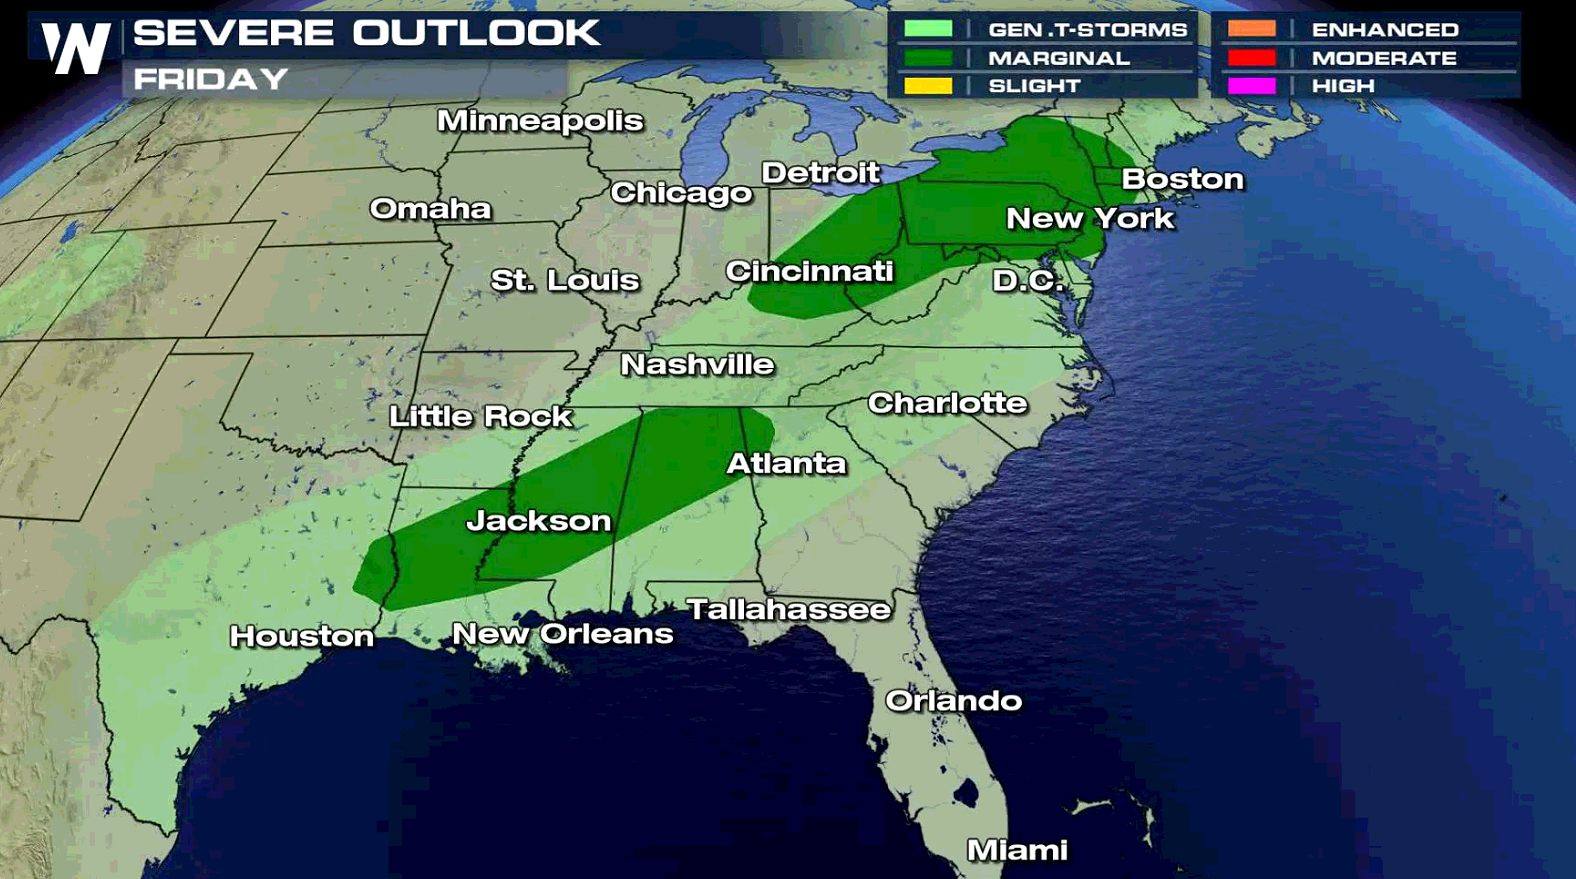 Strong Storms Possible in the Northeast & Southeast